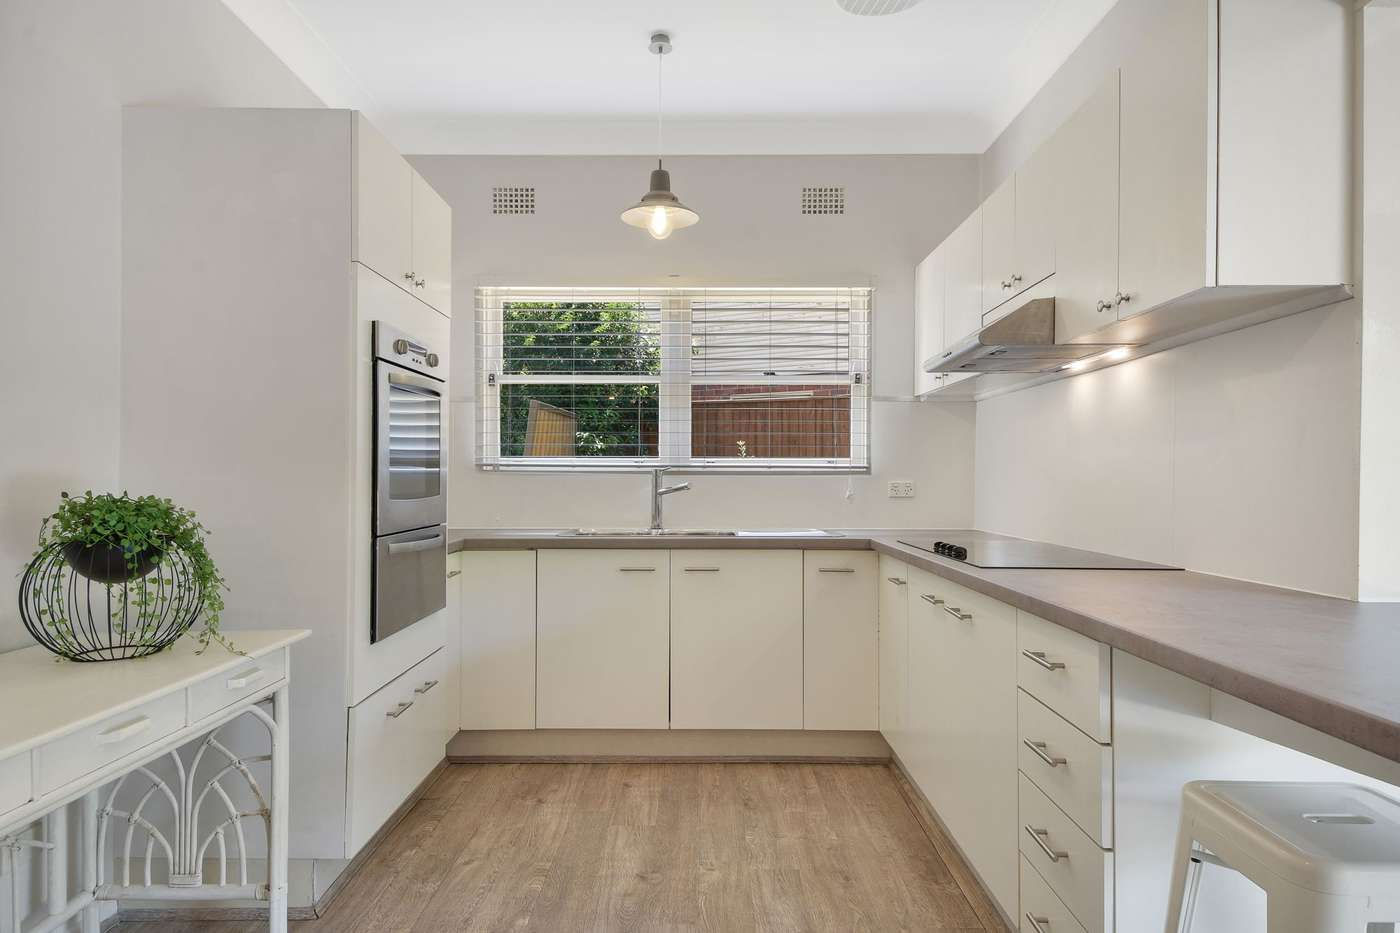 Main view of Homely house listing, Address available on request, Campbelltown, NSW 2560